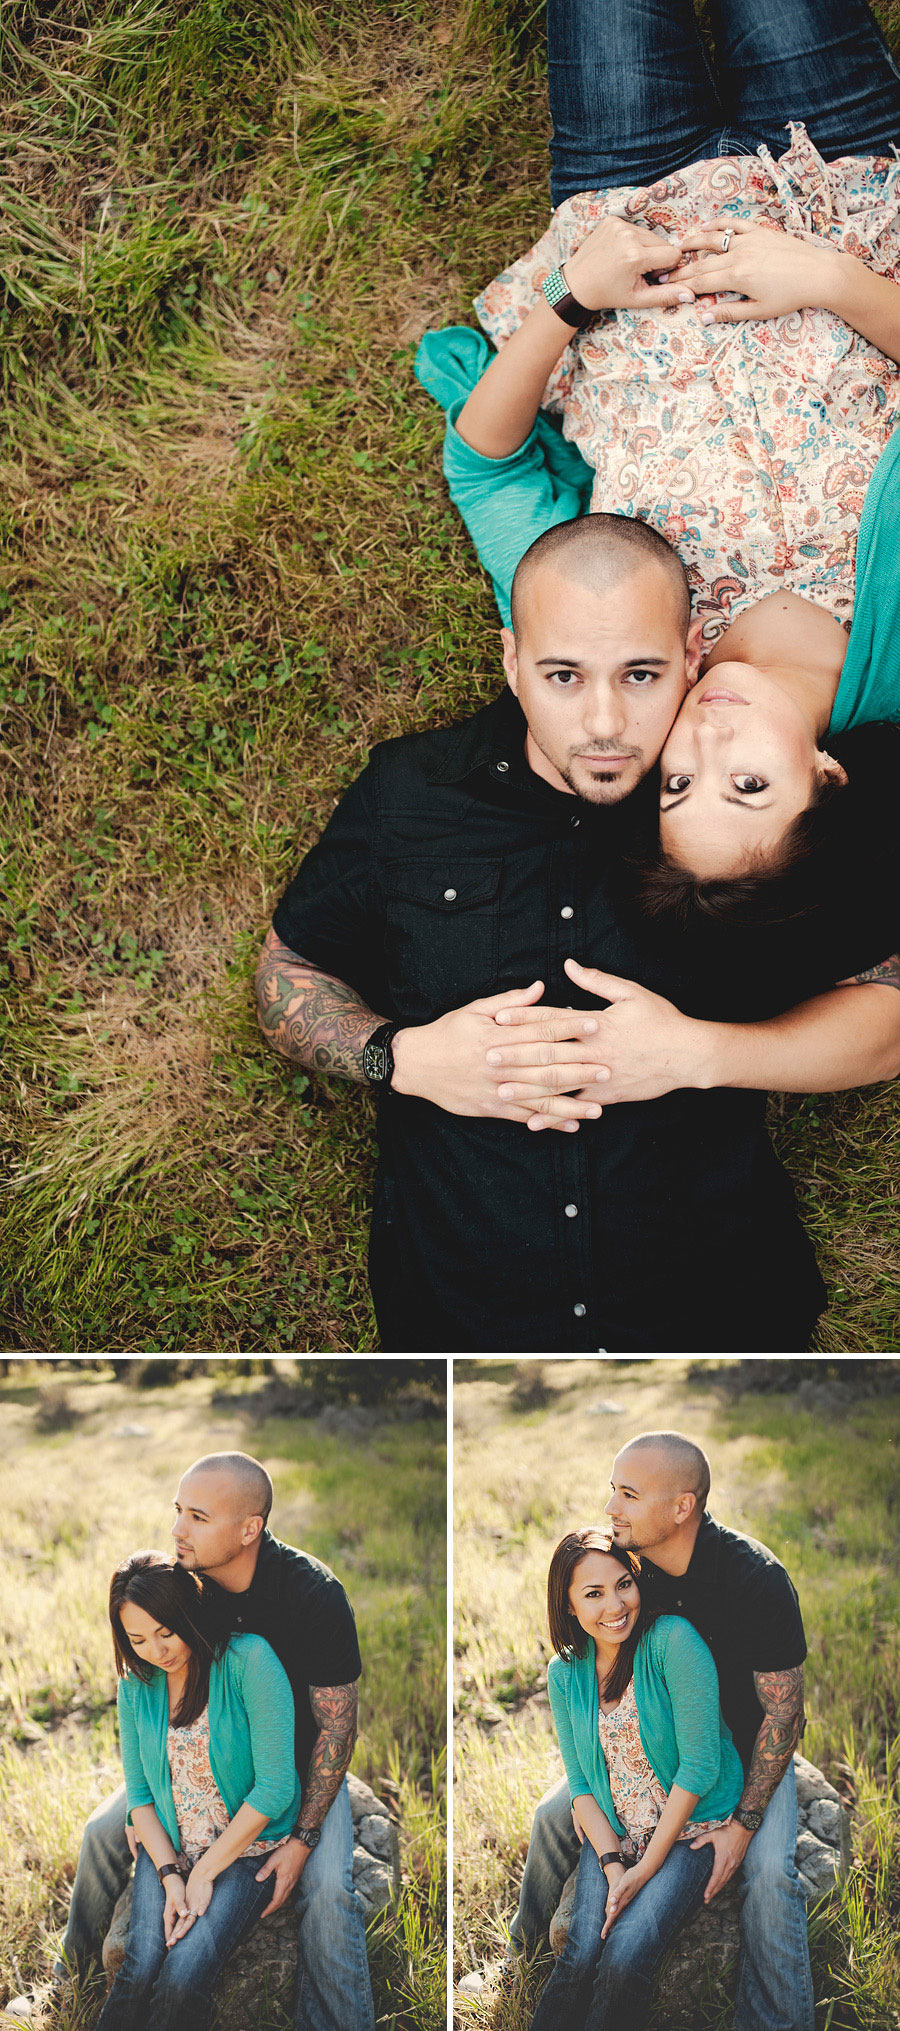 Kate-and-Brad-Orange-County-Engagement-Photographer-Canyon-Engagement-Photography-0001